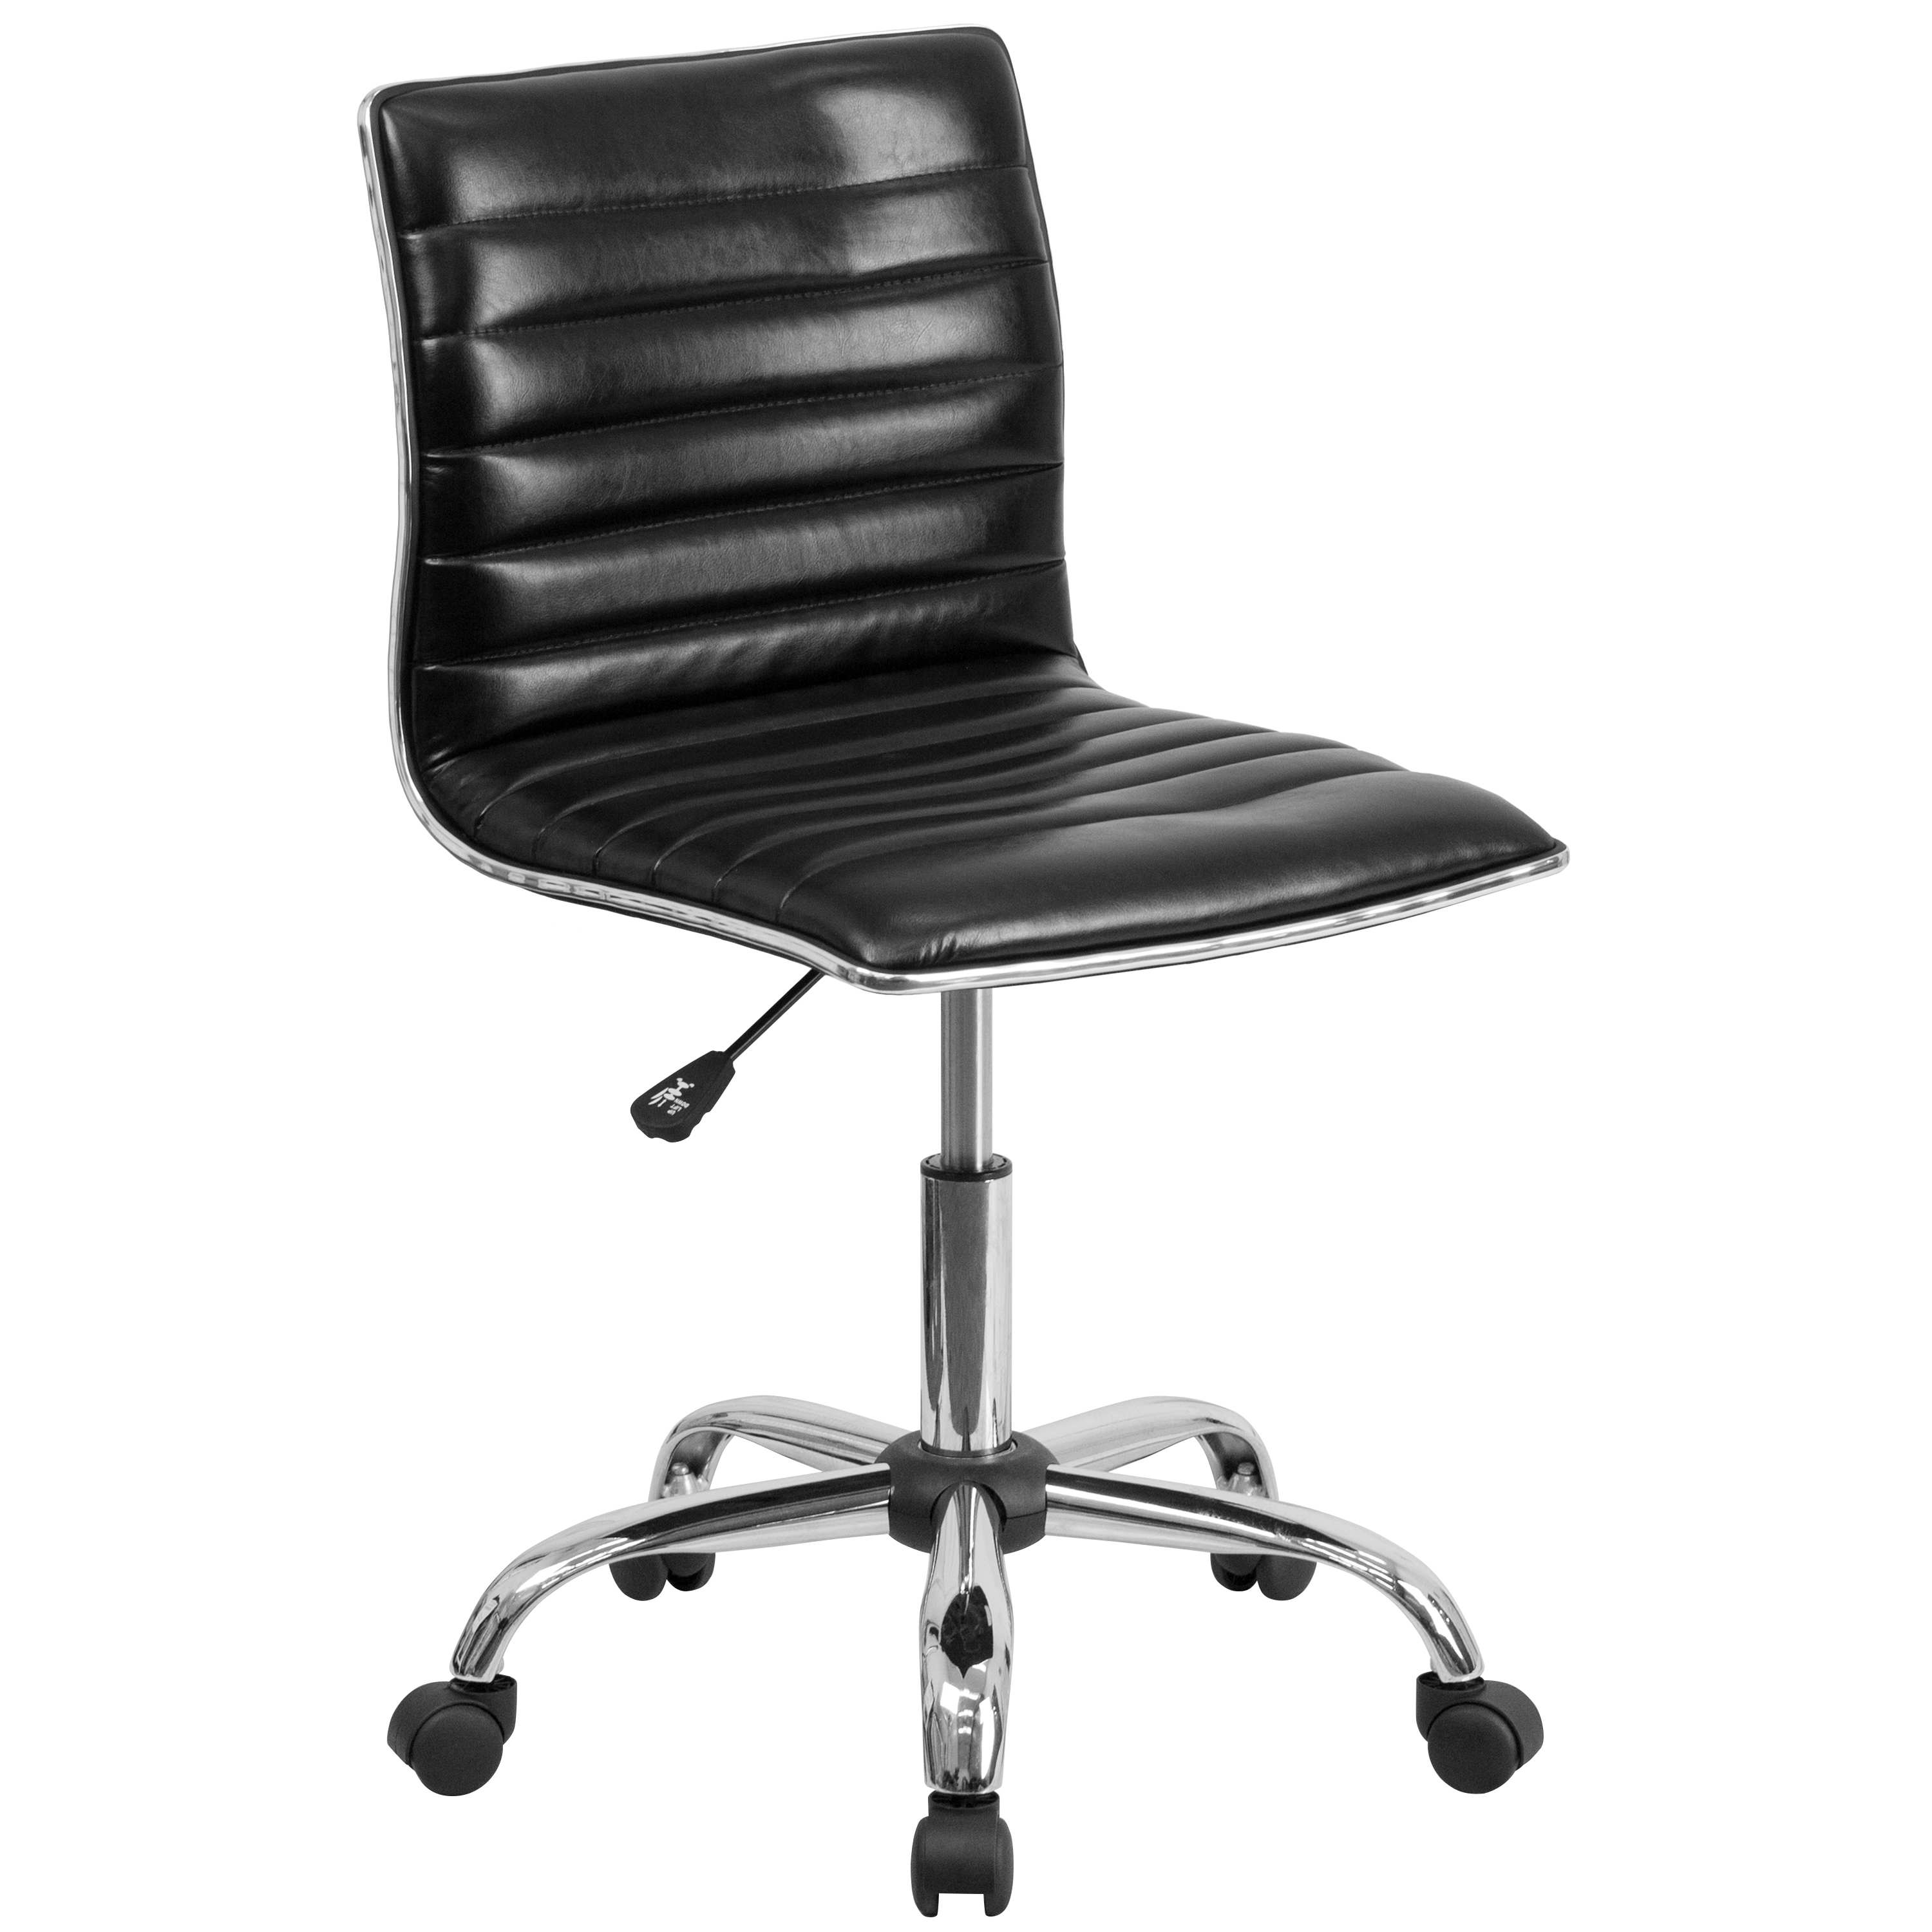 Flash Furniture  Contemporary Leather Office Chair Mid-back Design